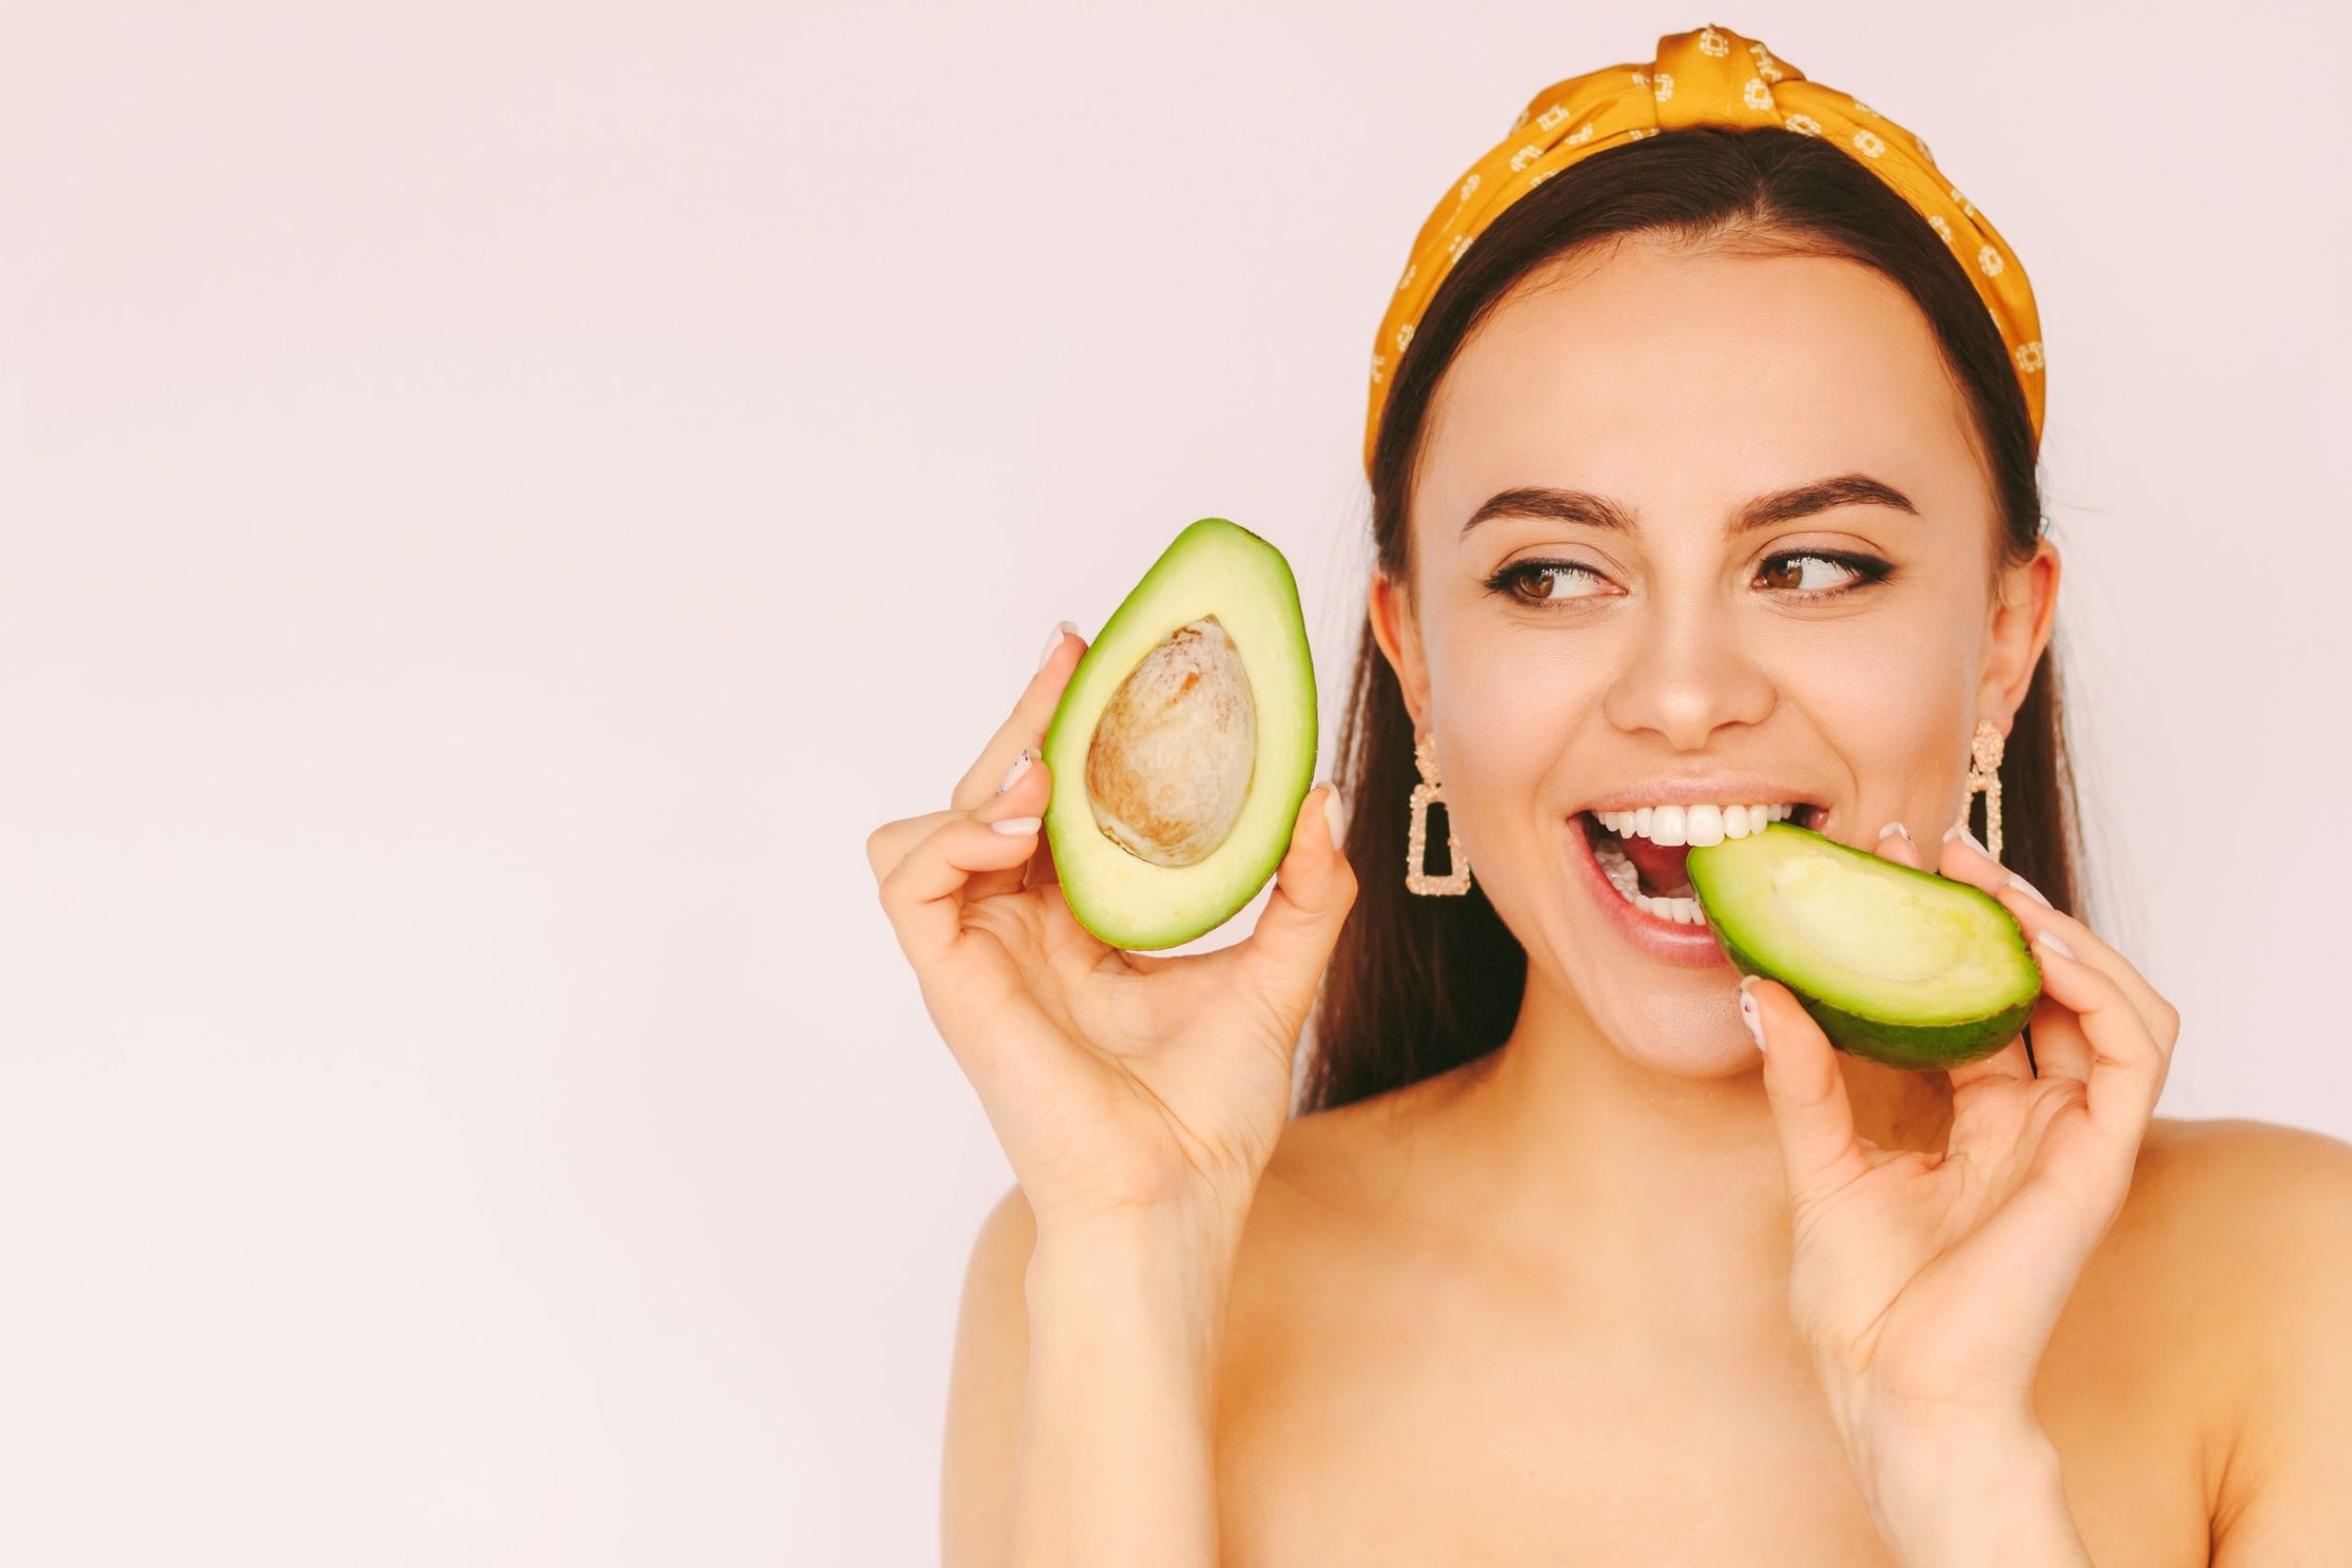 Woman eating avocado because it is part of her healthy skin diet.